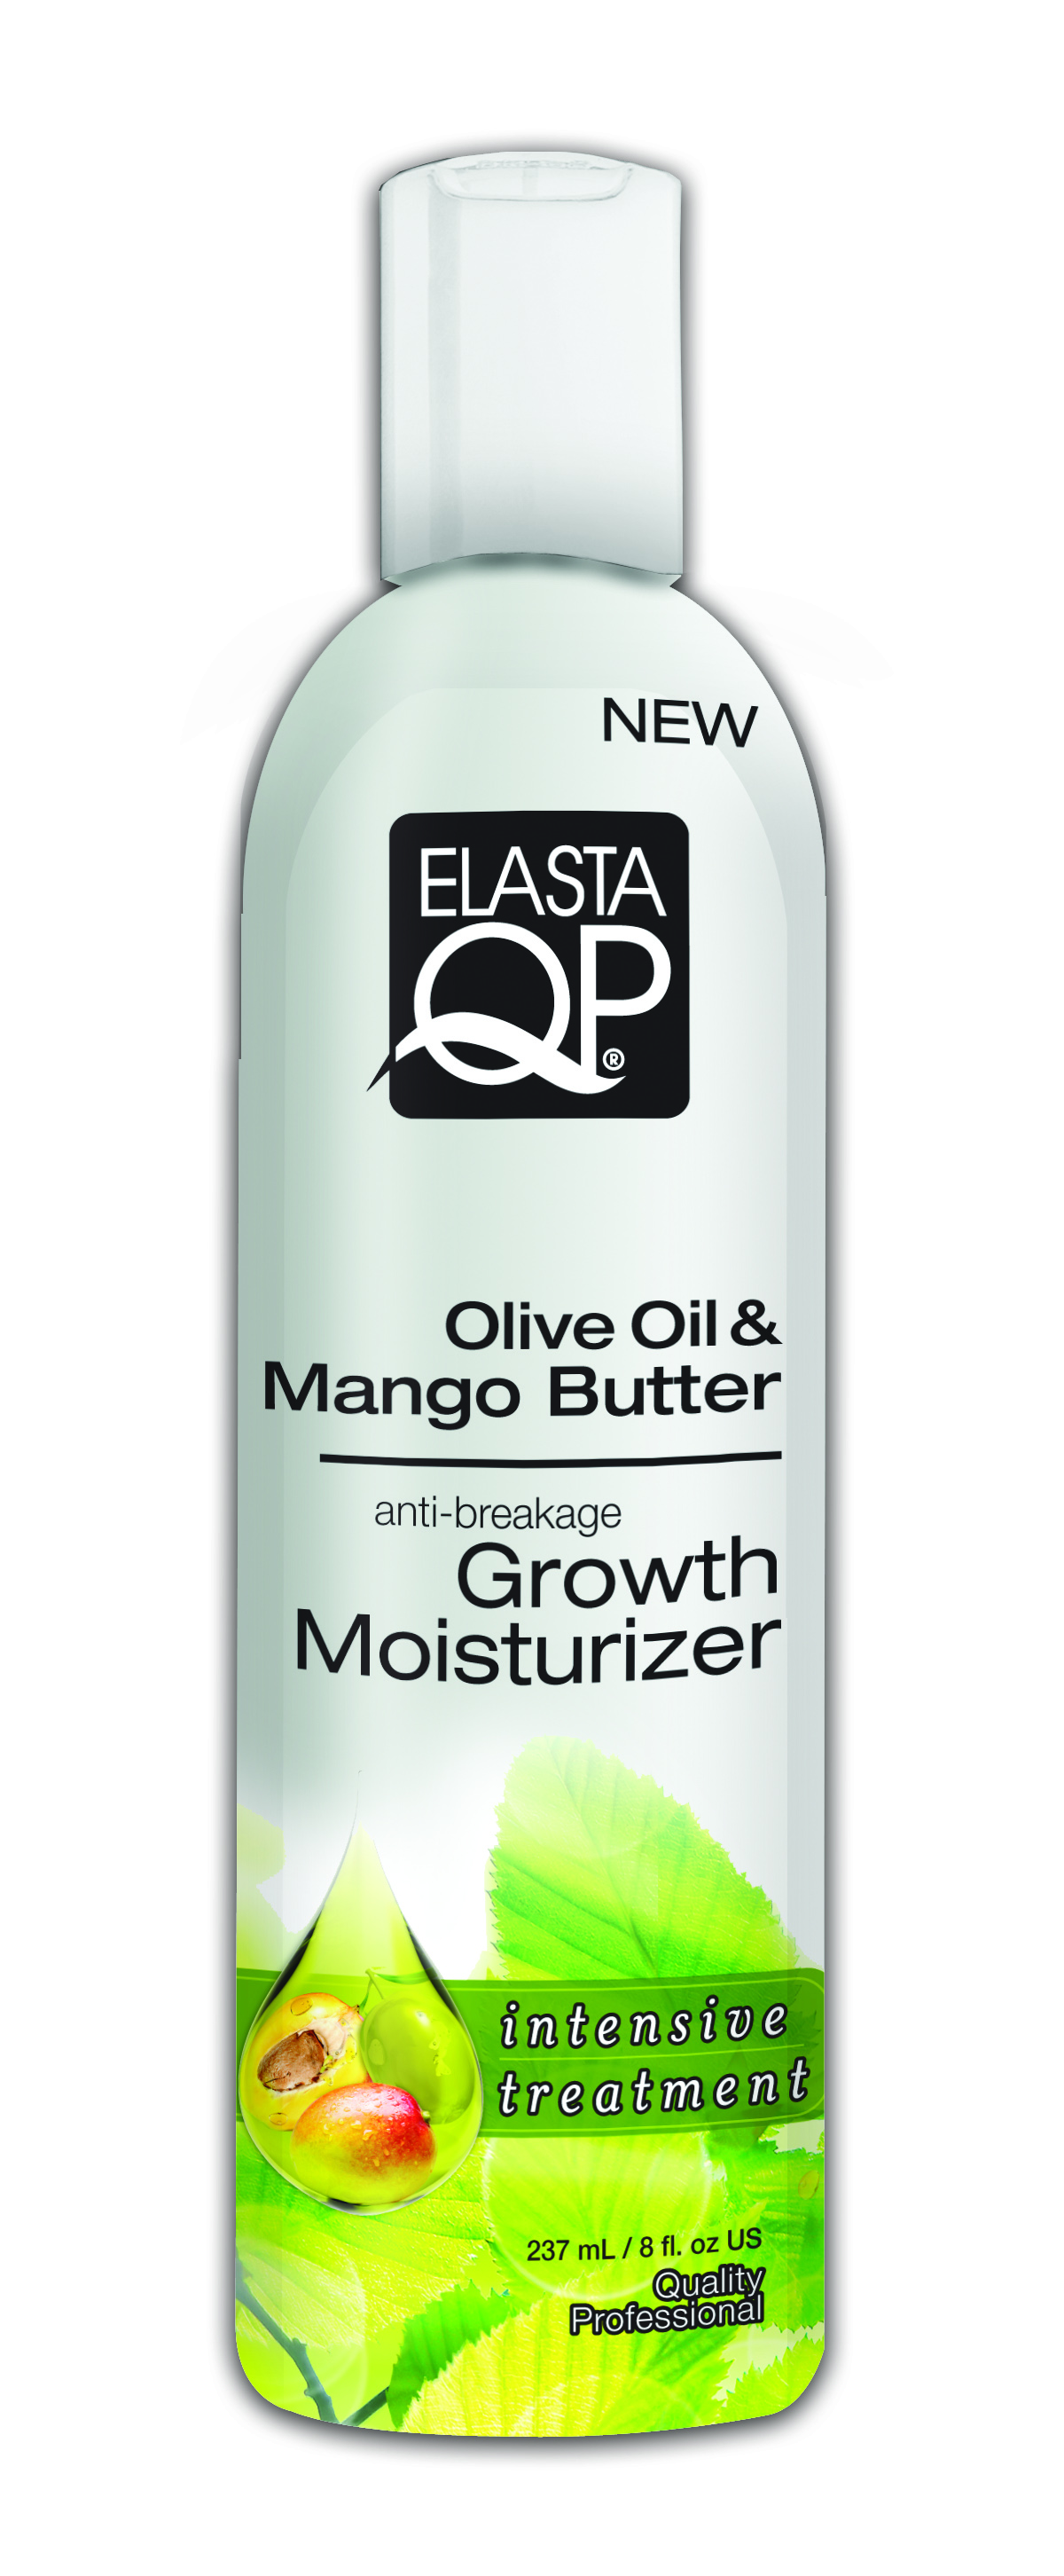 Olive Oil & Mango Butter Anti-Breakage Growth Moisturizer